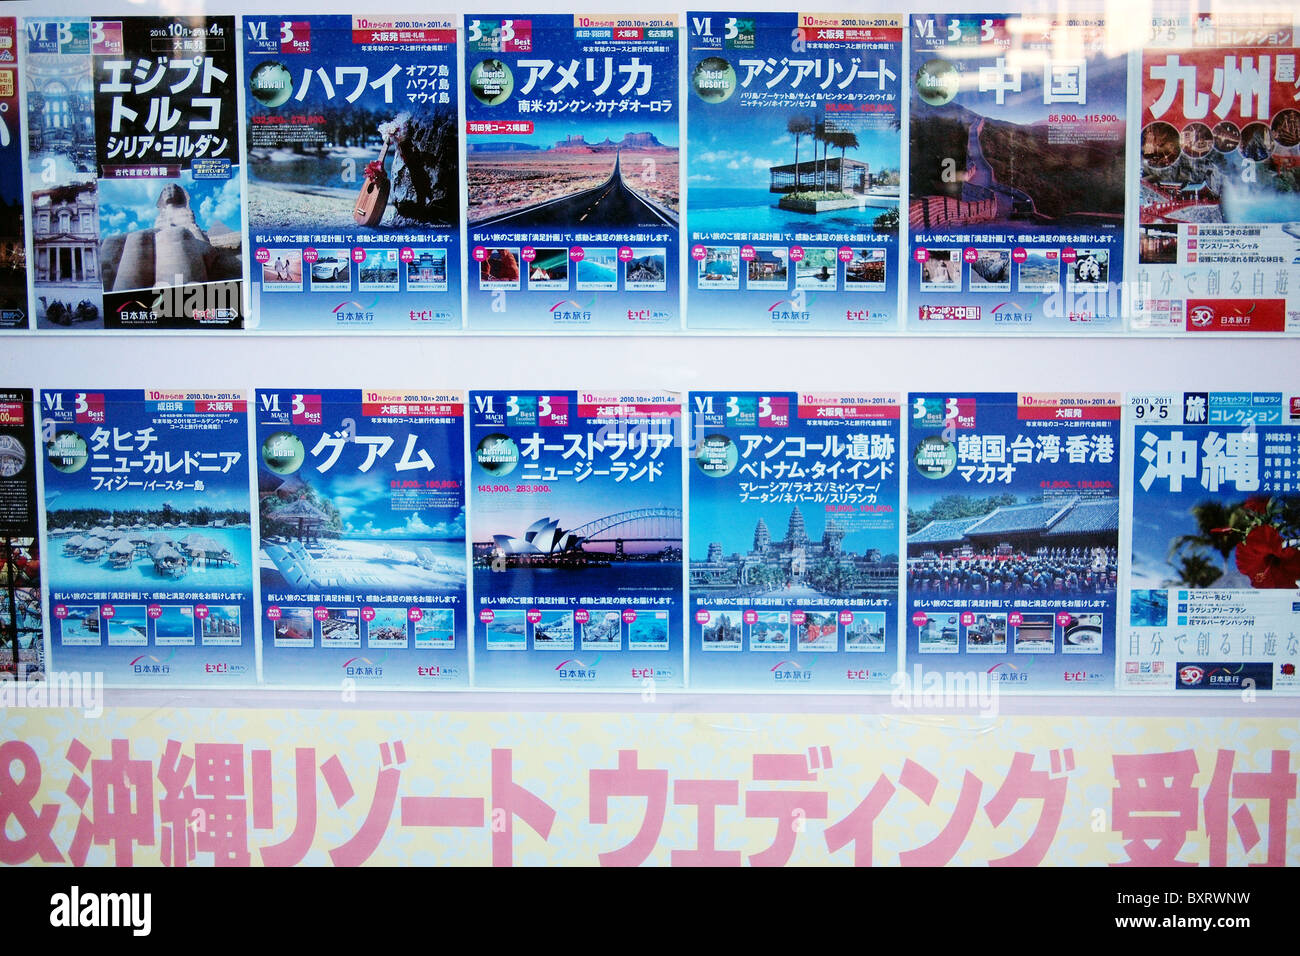 Nippon travel agency tourism holiday poster in Japan - Stock Image